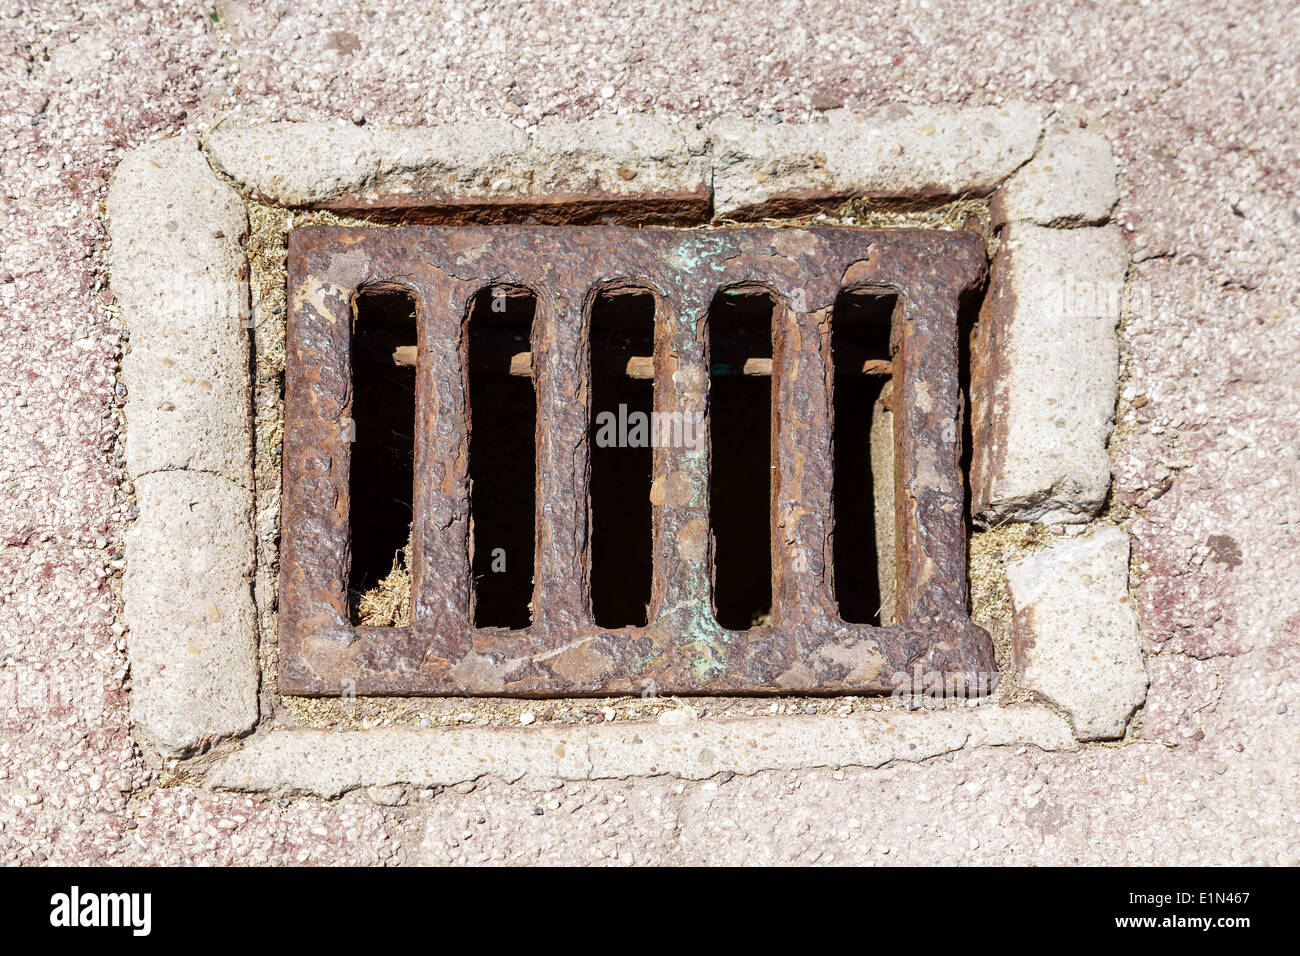 Sewer cover - Stock Image